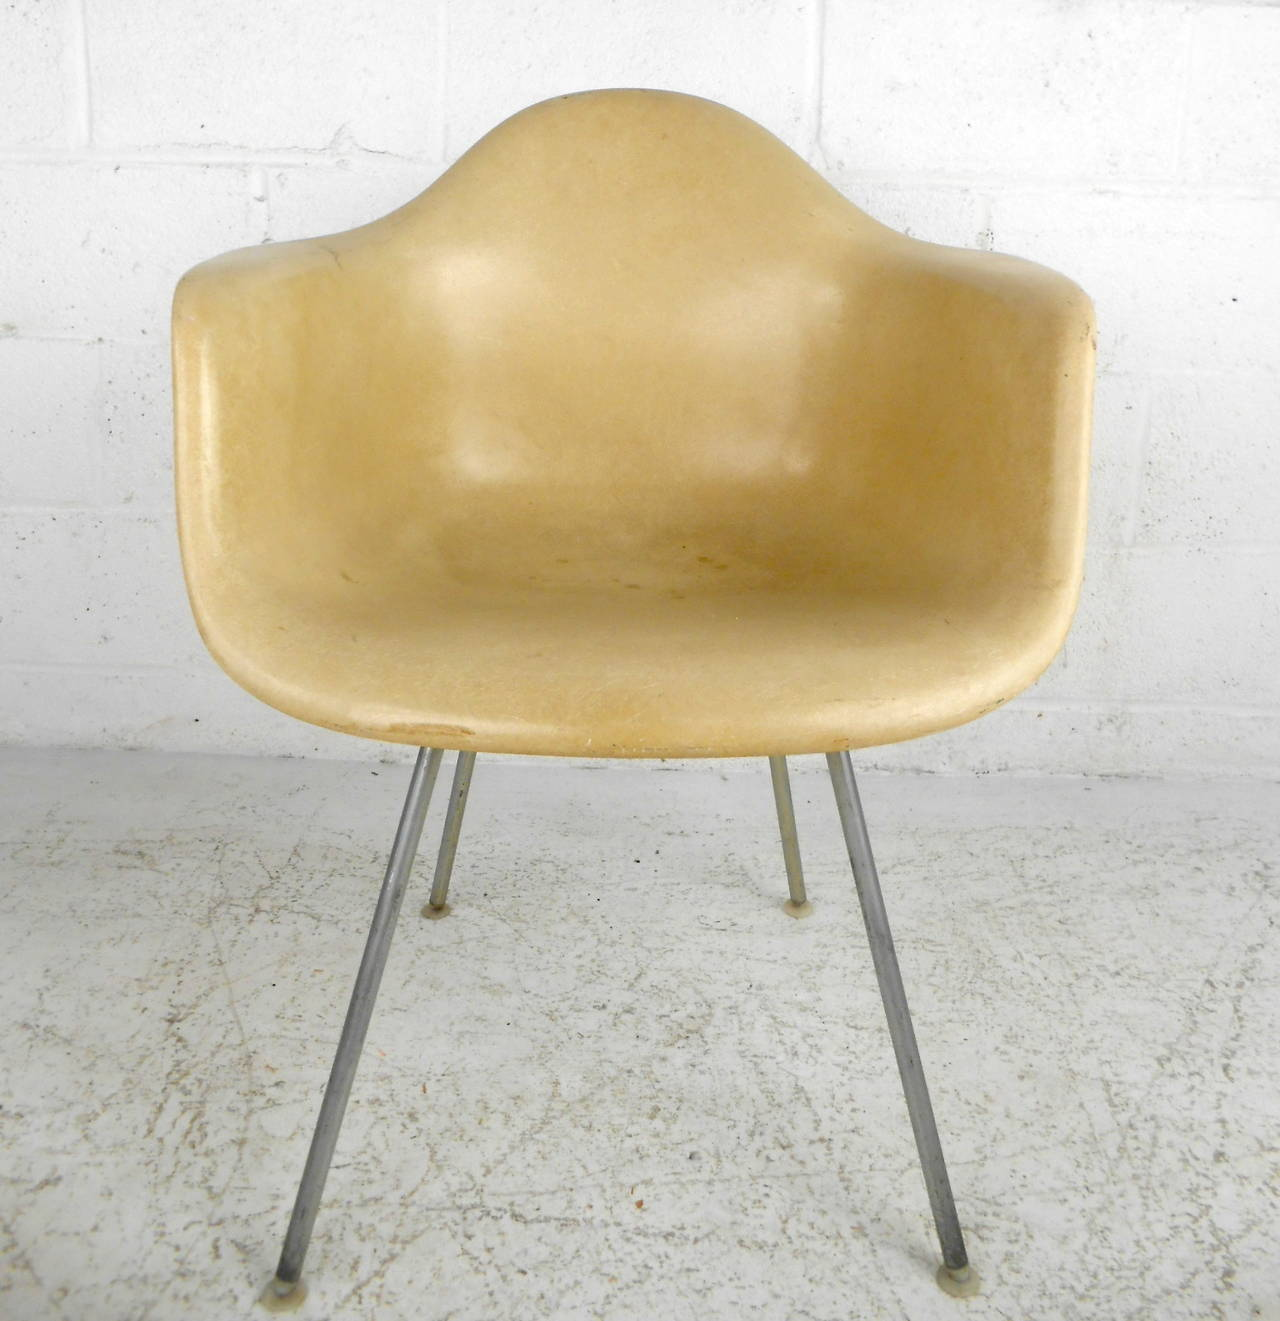 mid century modern fiberglass shell chair by eames for herman miller for sale at 1stdibs. Black Bedroom Furniture Sets. Home Design Ideas